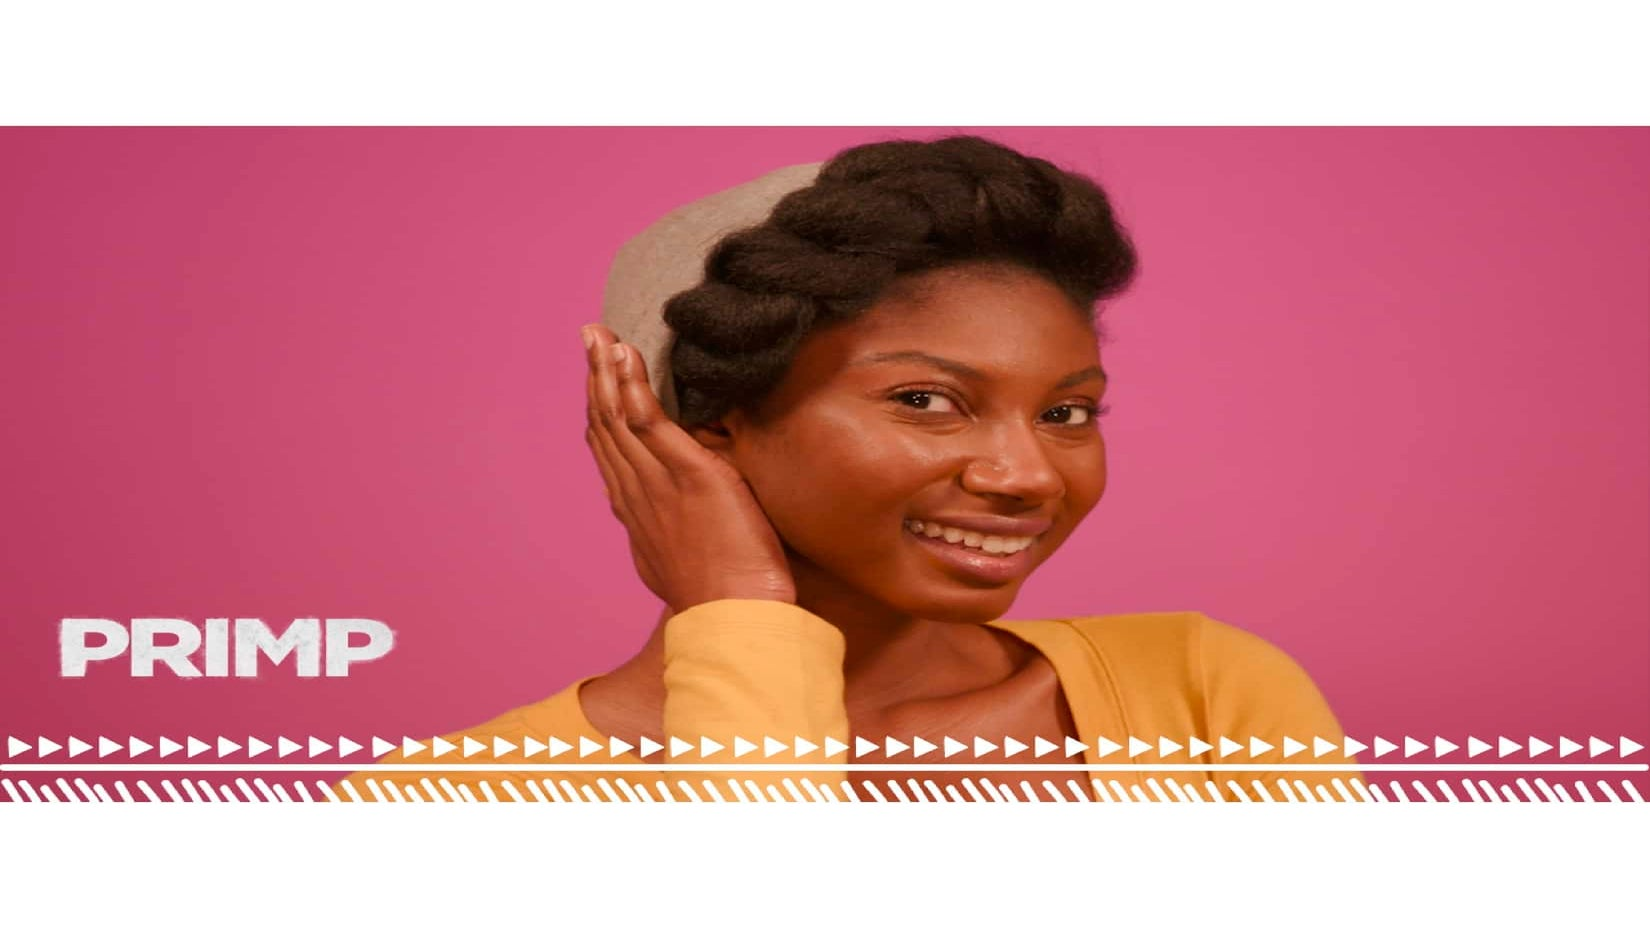 Watch 'PRIMP': Learn A Few Stylish Ways To Wear Your Natural Hair Underneath Your Hat